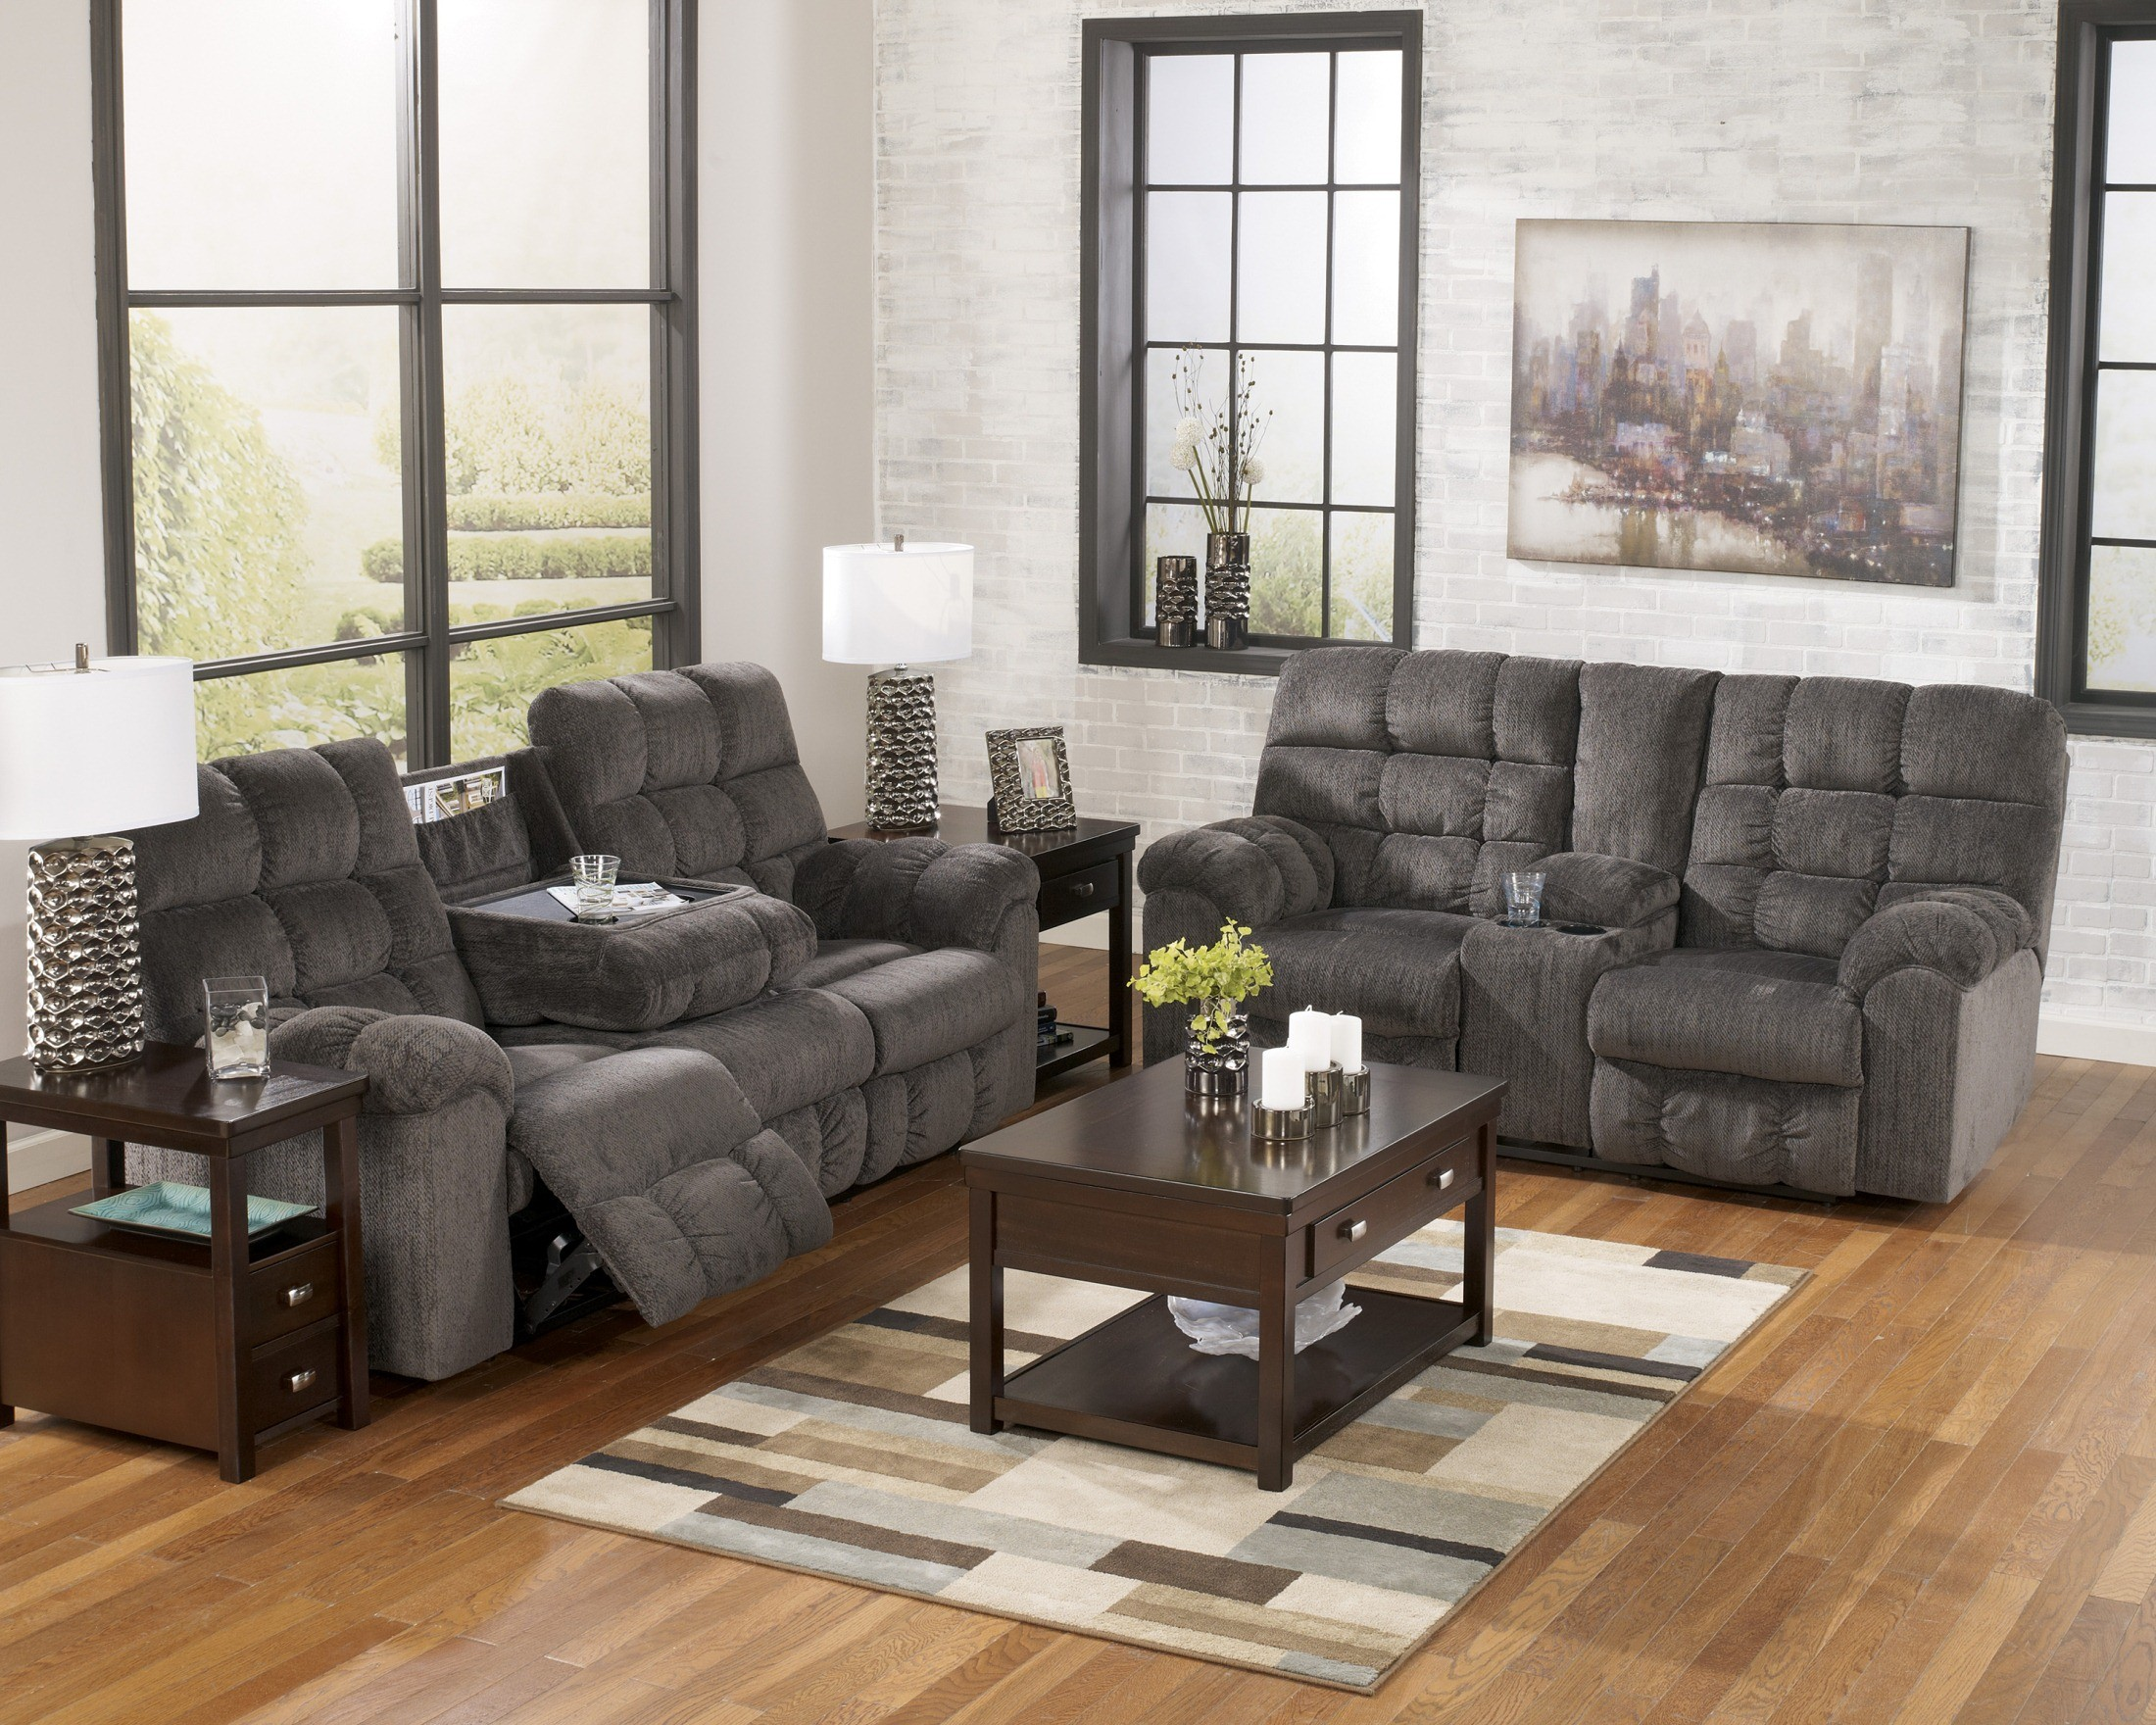 Acieona Slate Living Room Set From Ashley 58300